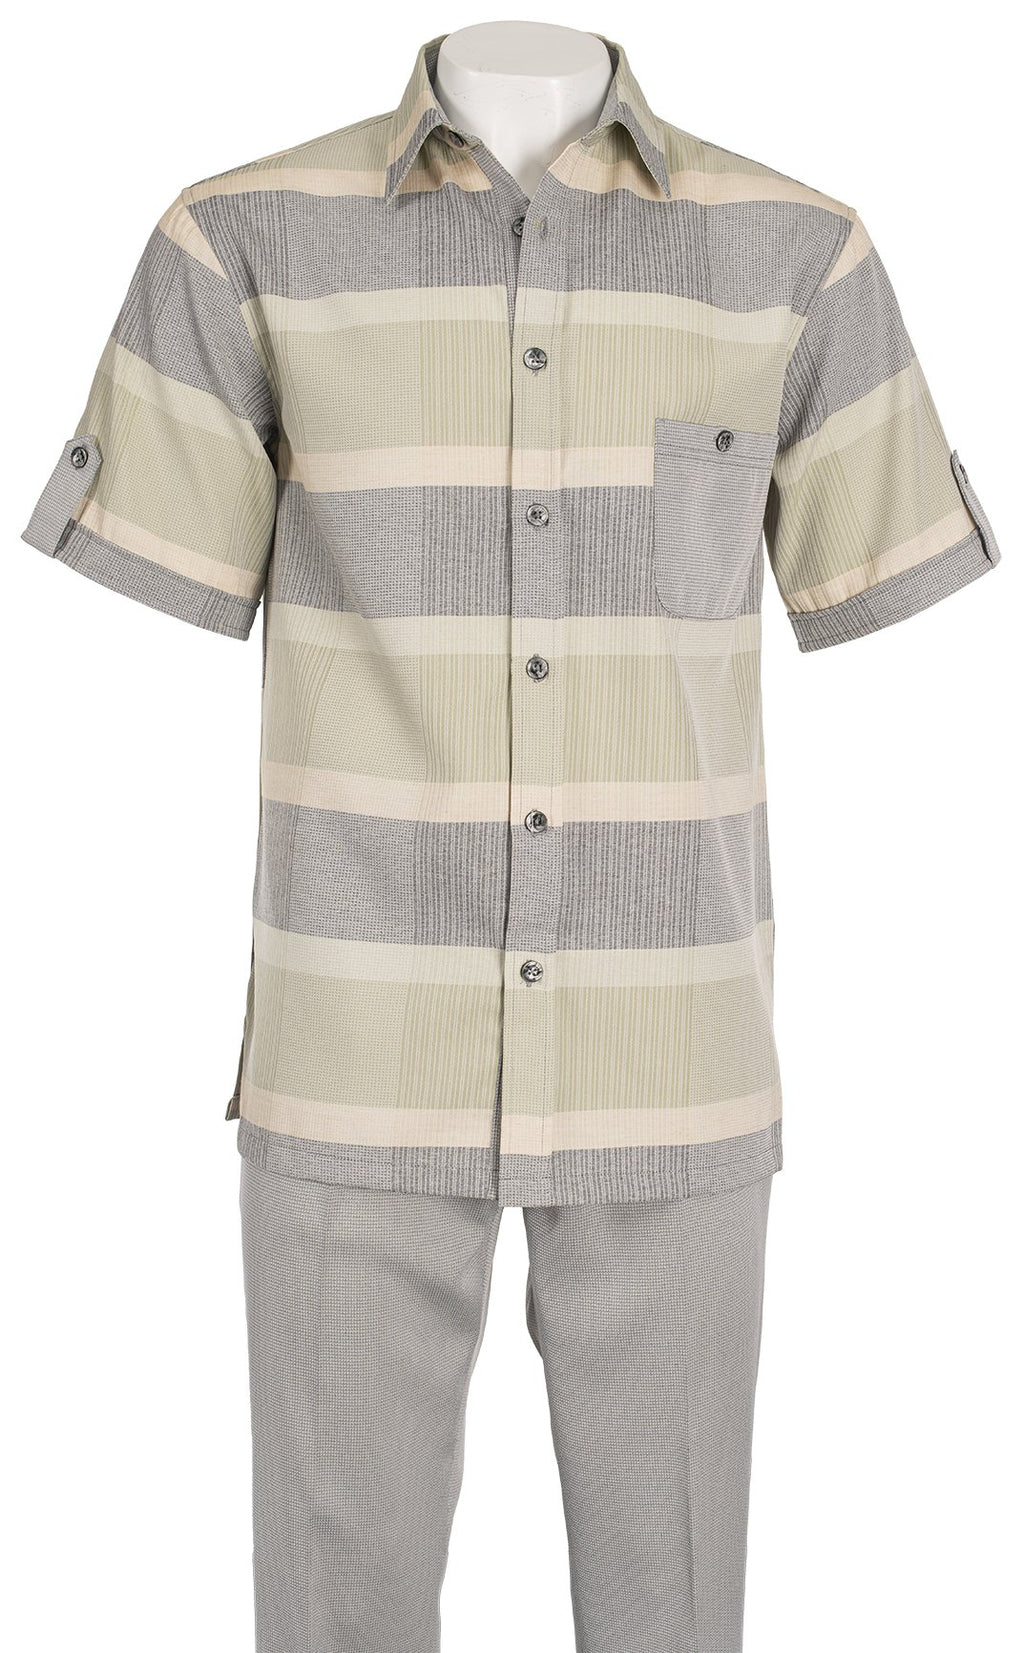 Inserch Giorgio Inserti S/S Shirt with Bold Stripe and Matching Pants Set 742-04 Lt. Gray